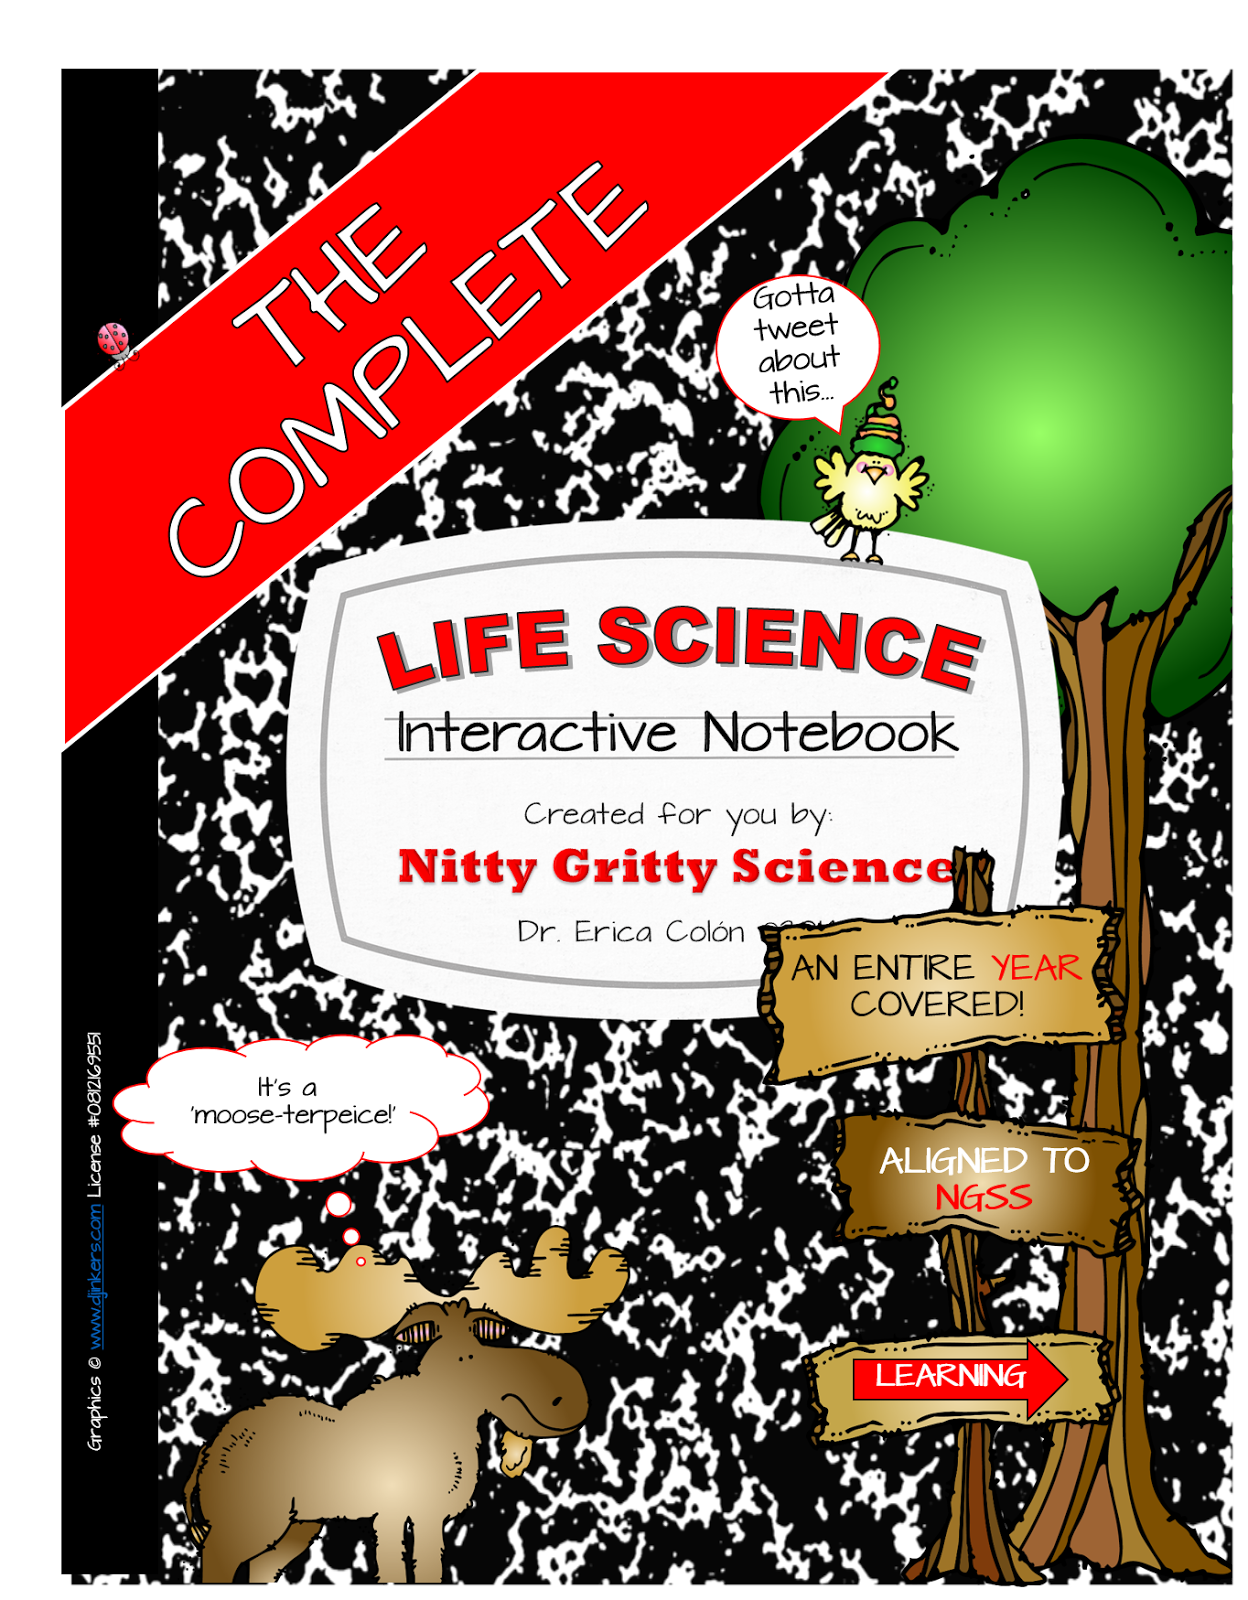 Nitty Gritty Science It S Finally Here The Complete Life Science Interactive Notebook